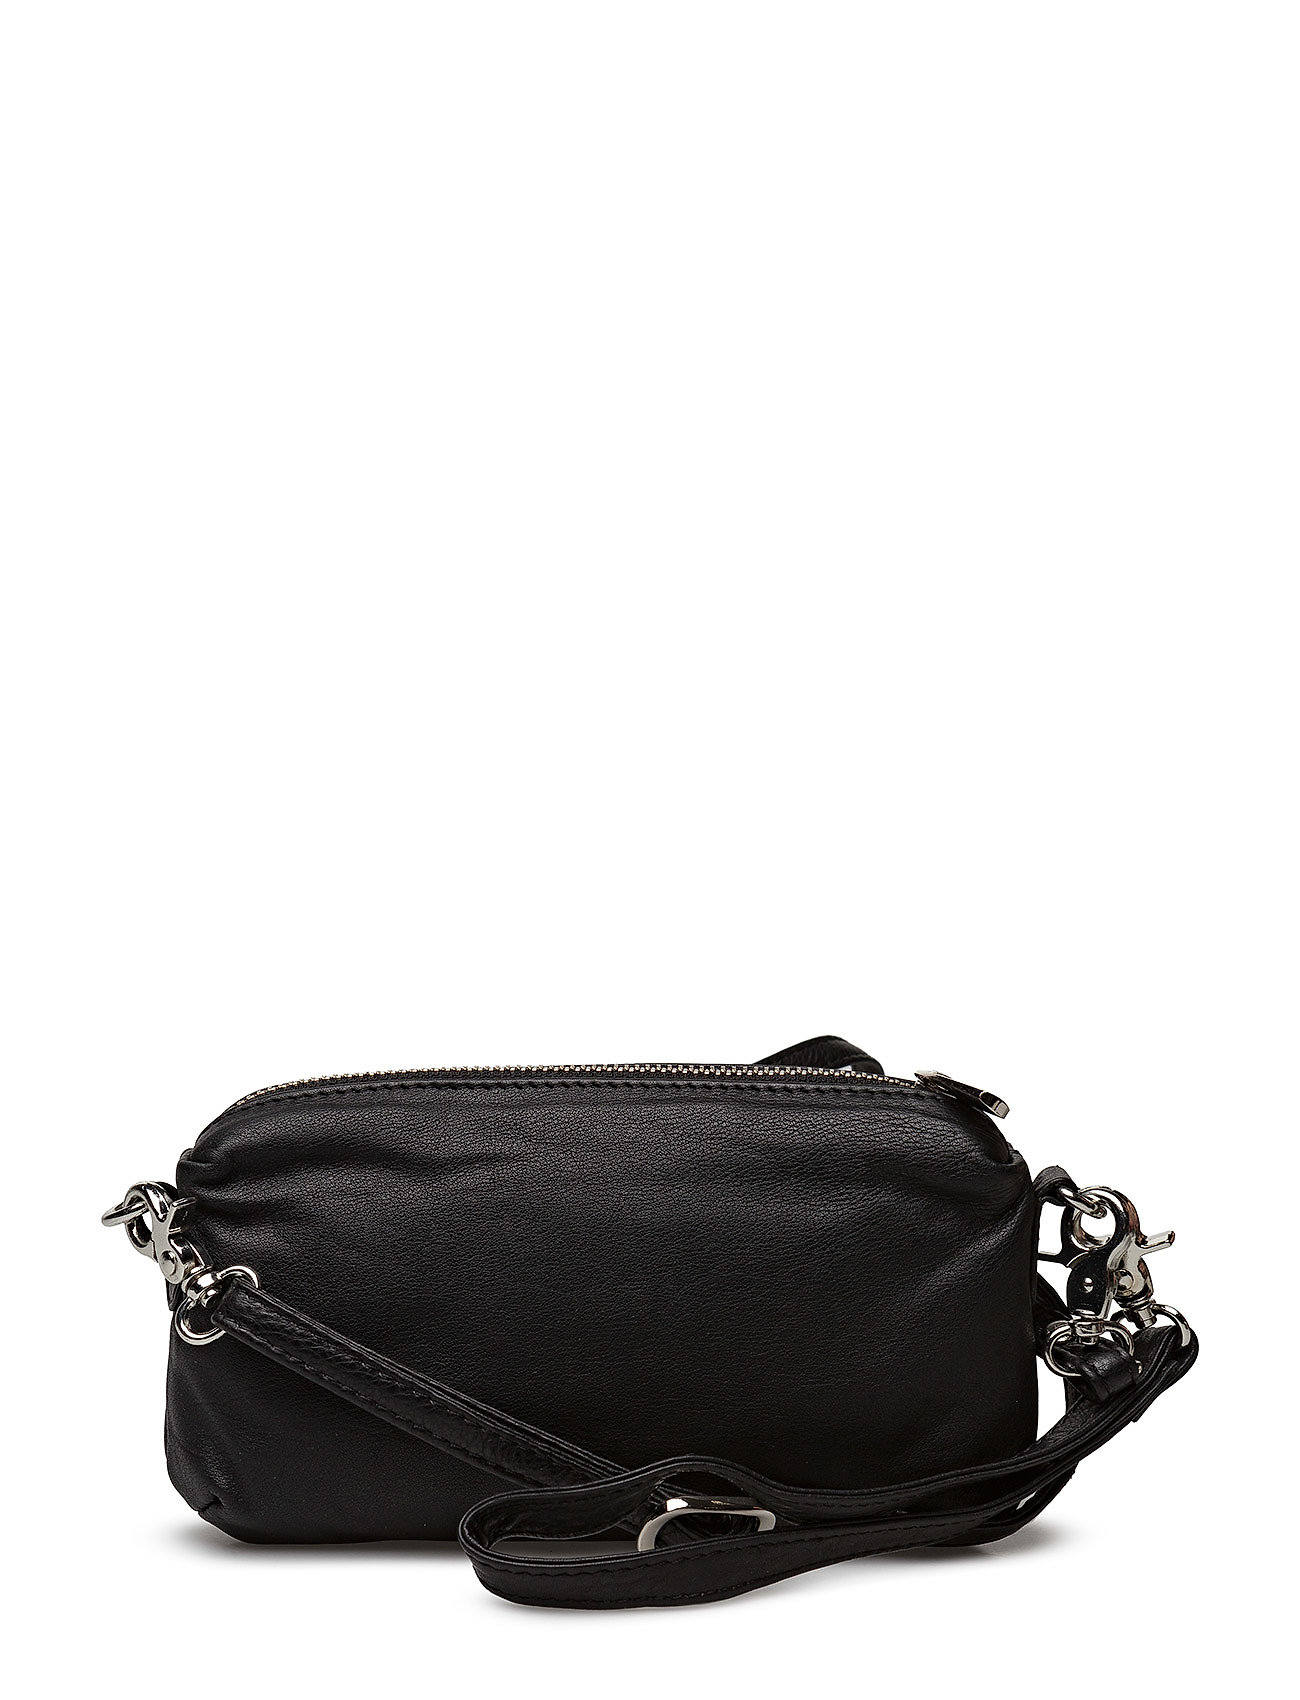 Image of Small Bag / Clutch Bags Small Shoulder Bags/crossbody Bags Sort DEPECHE (2953091629)